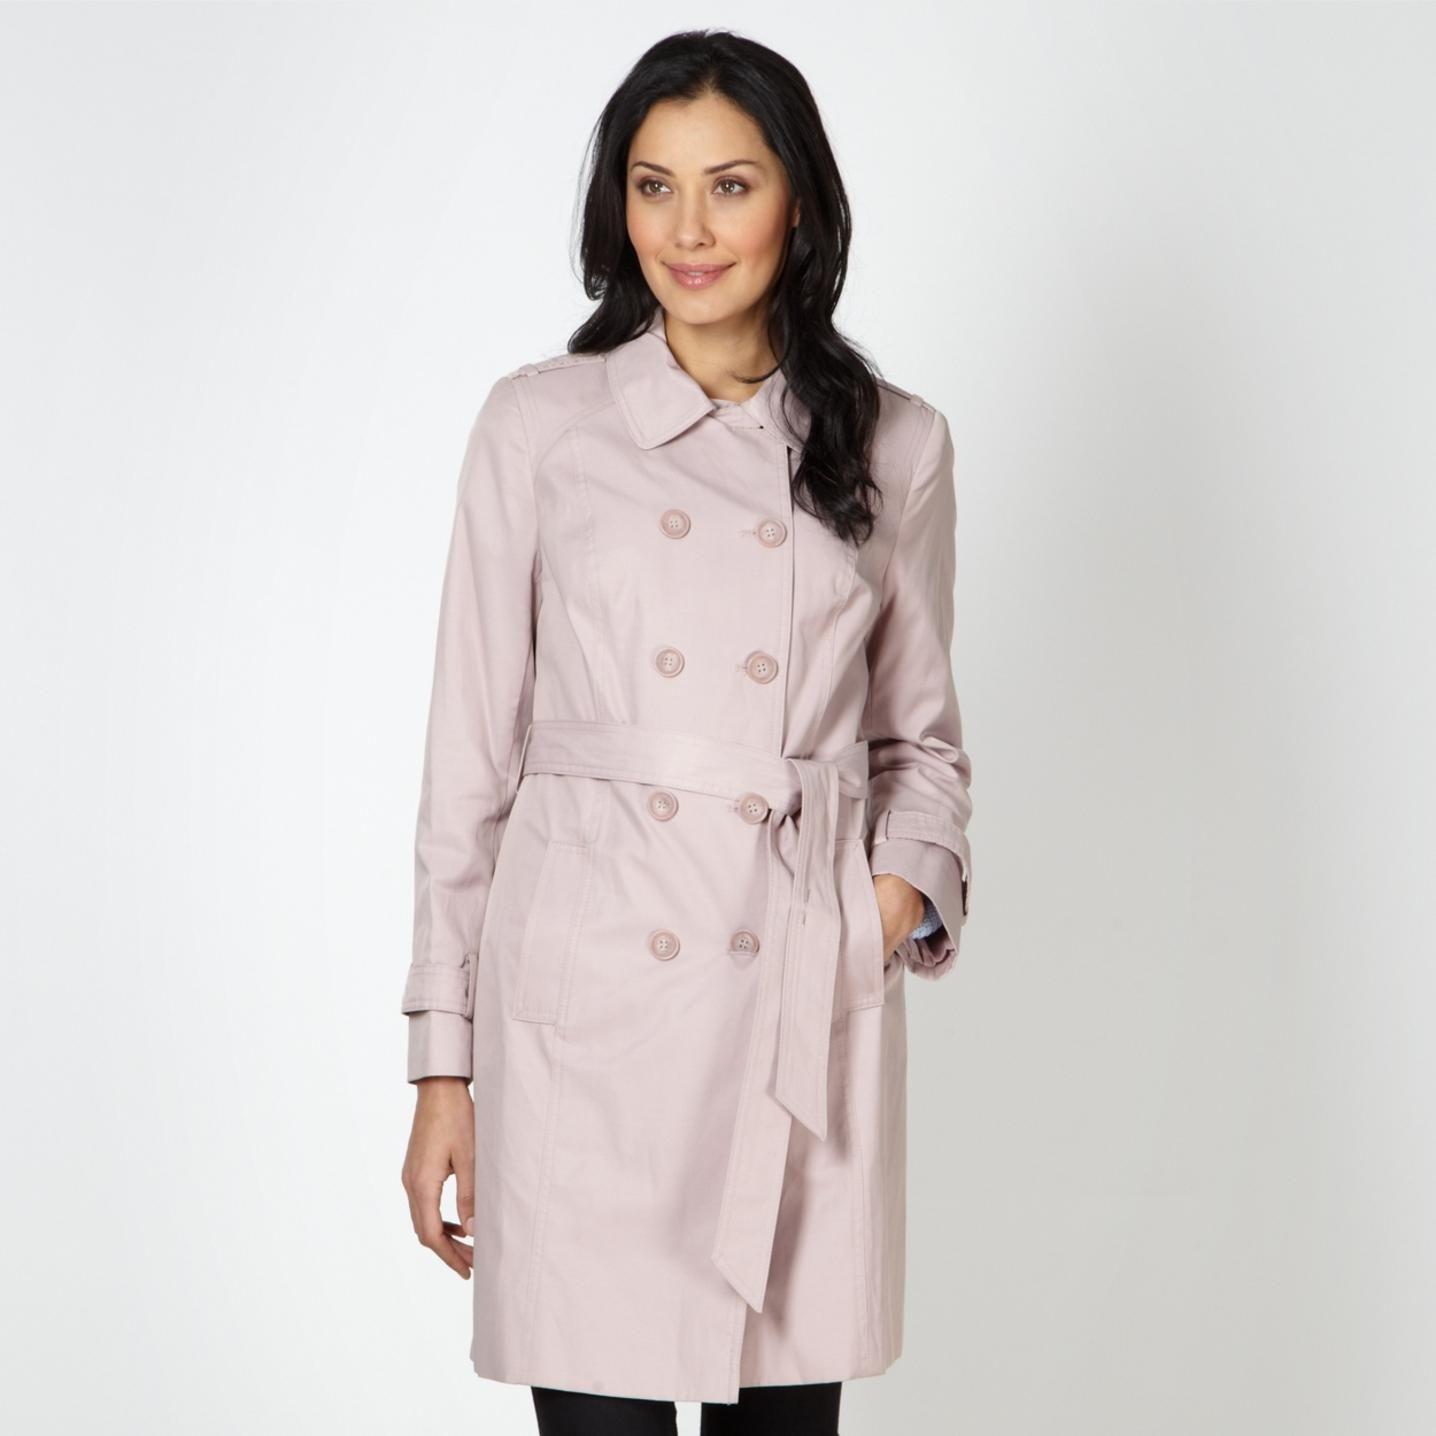 Pale pink mac coat http://picvpic.com/women-coats-jackets-coats ...